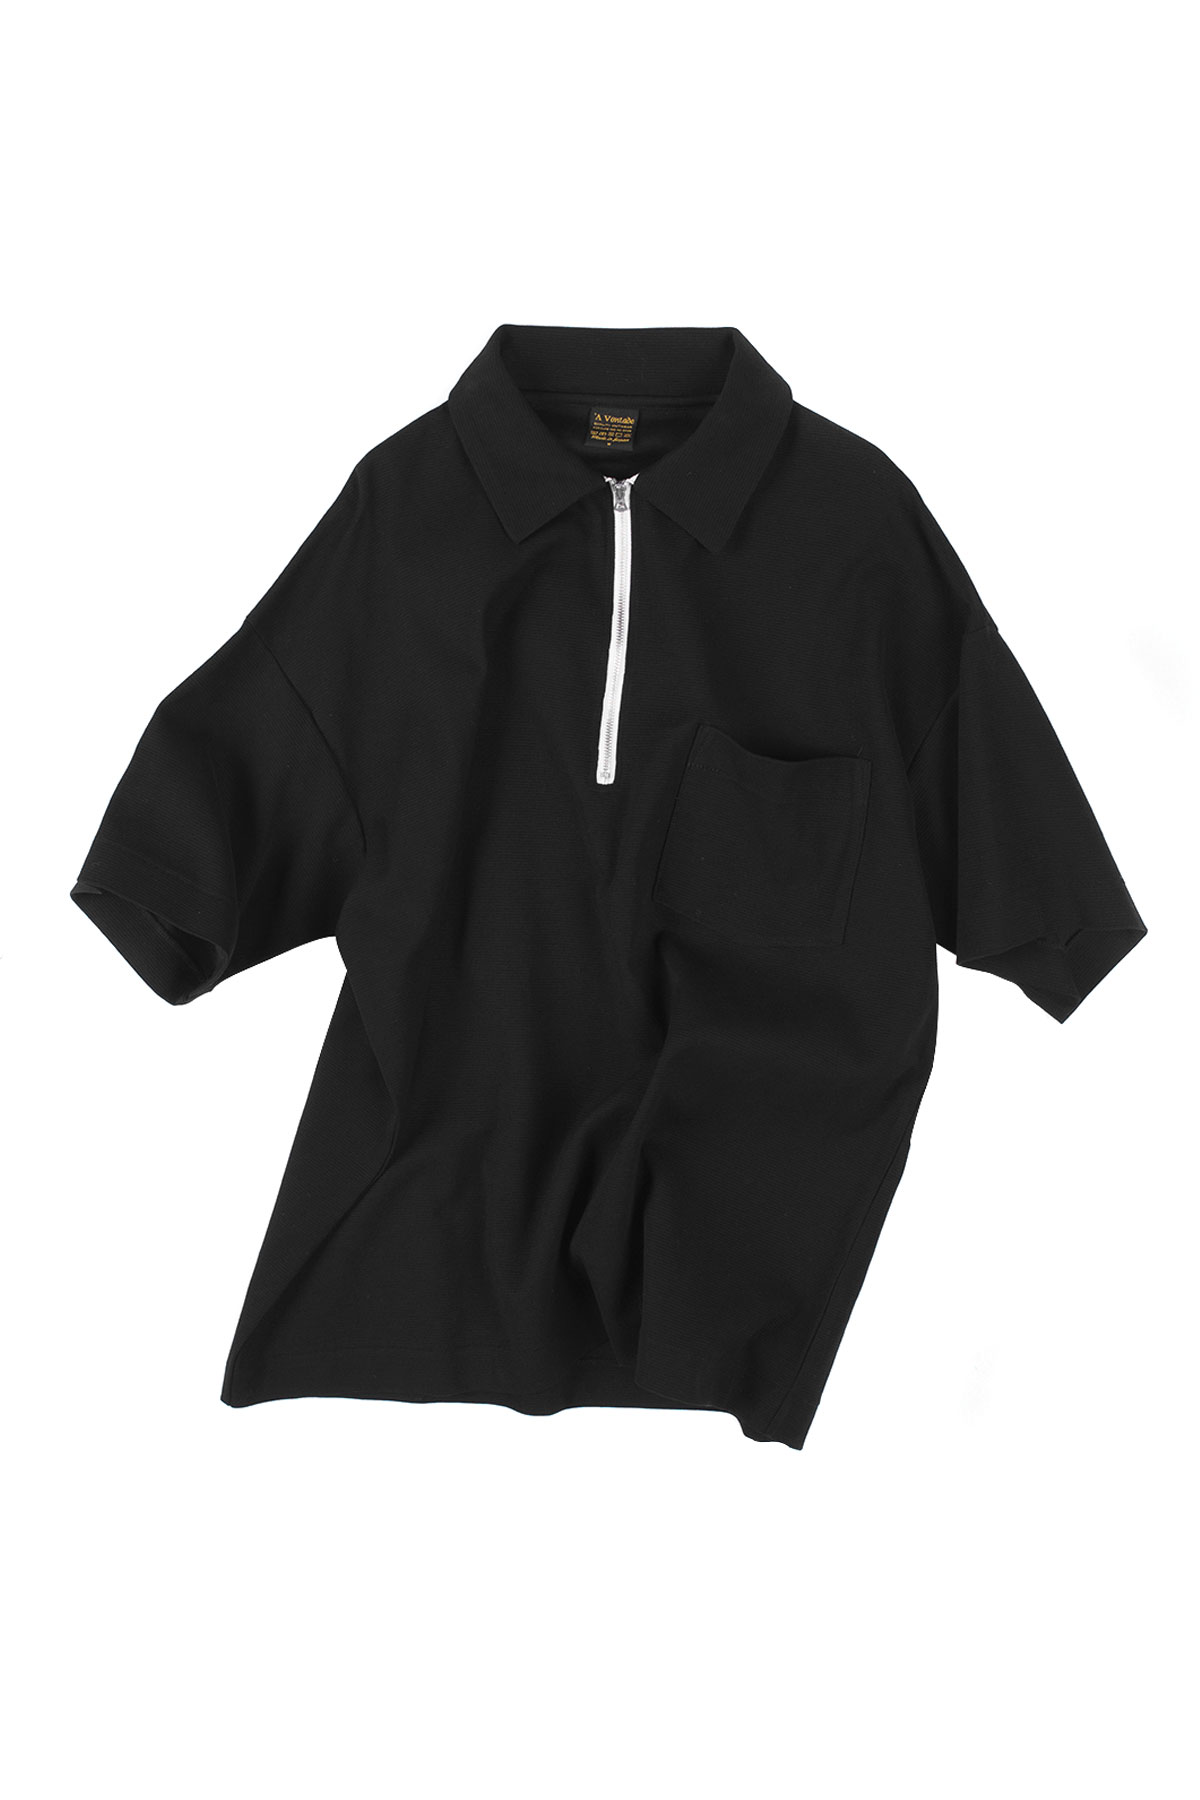 A vontade : Half Zip Polo S/S (Black)